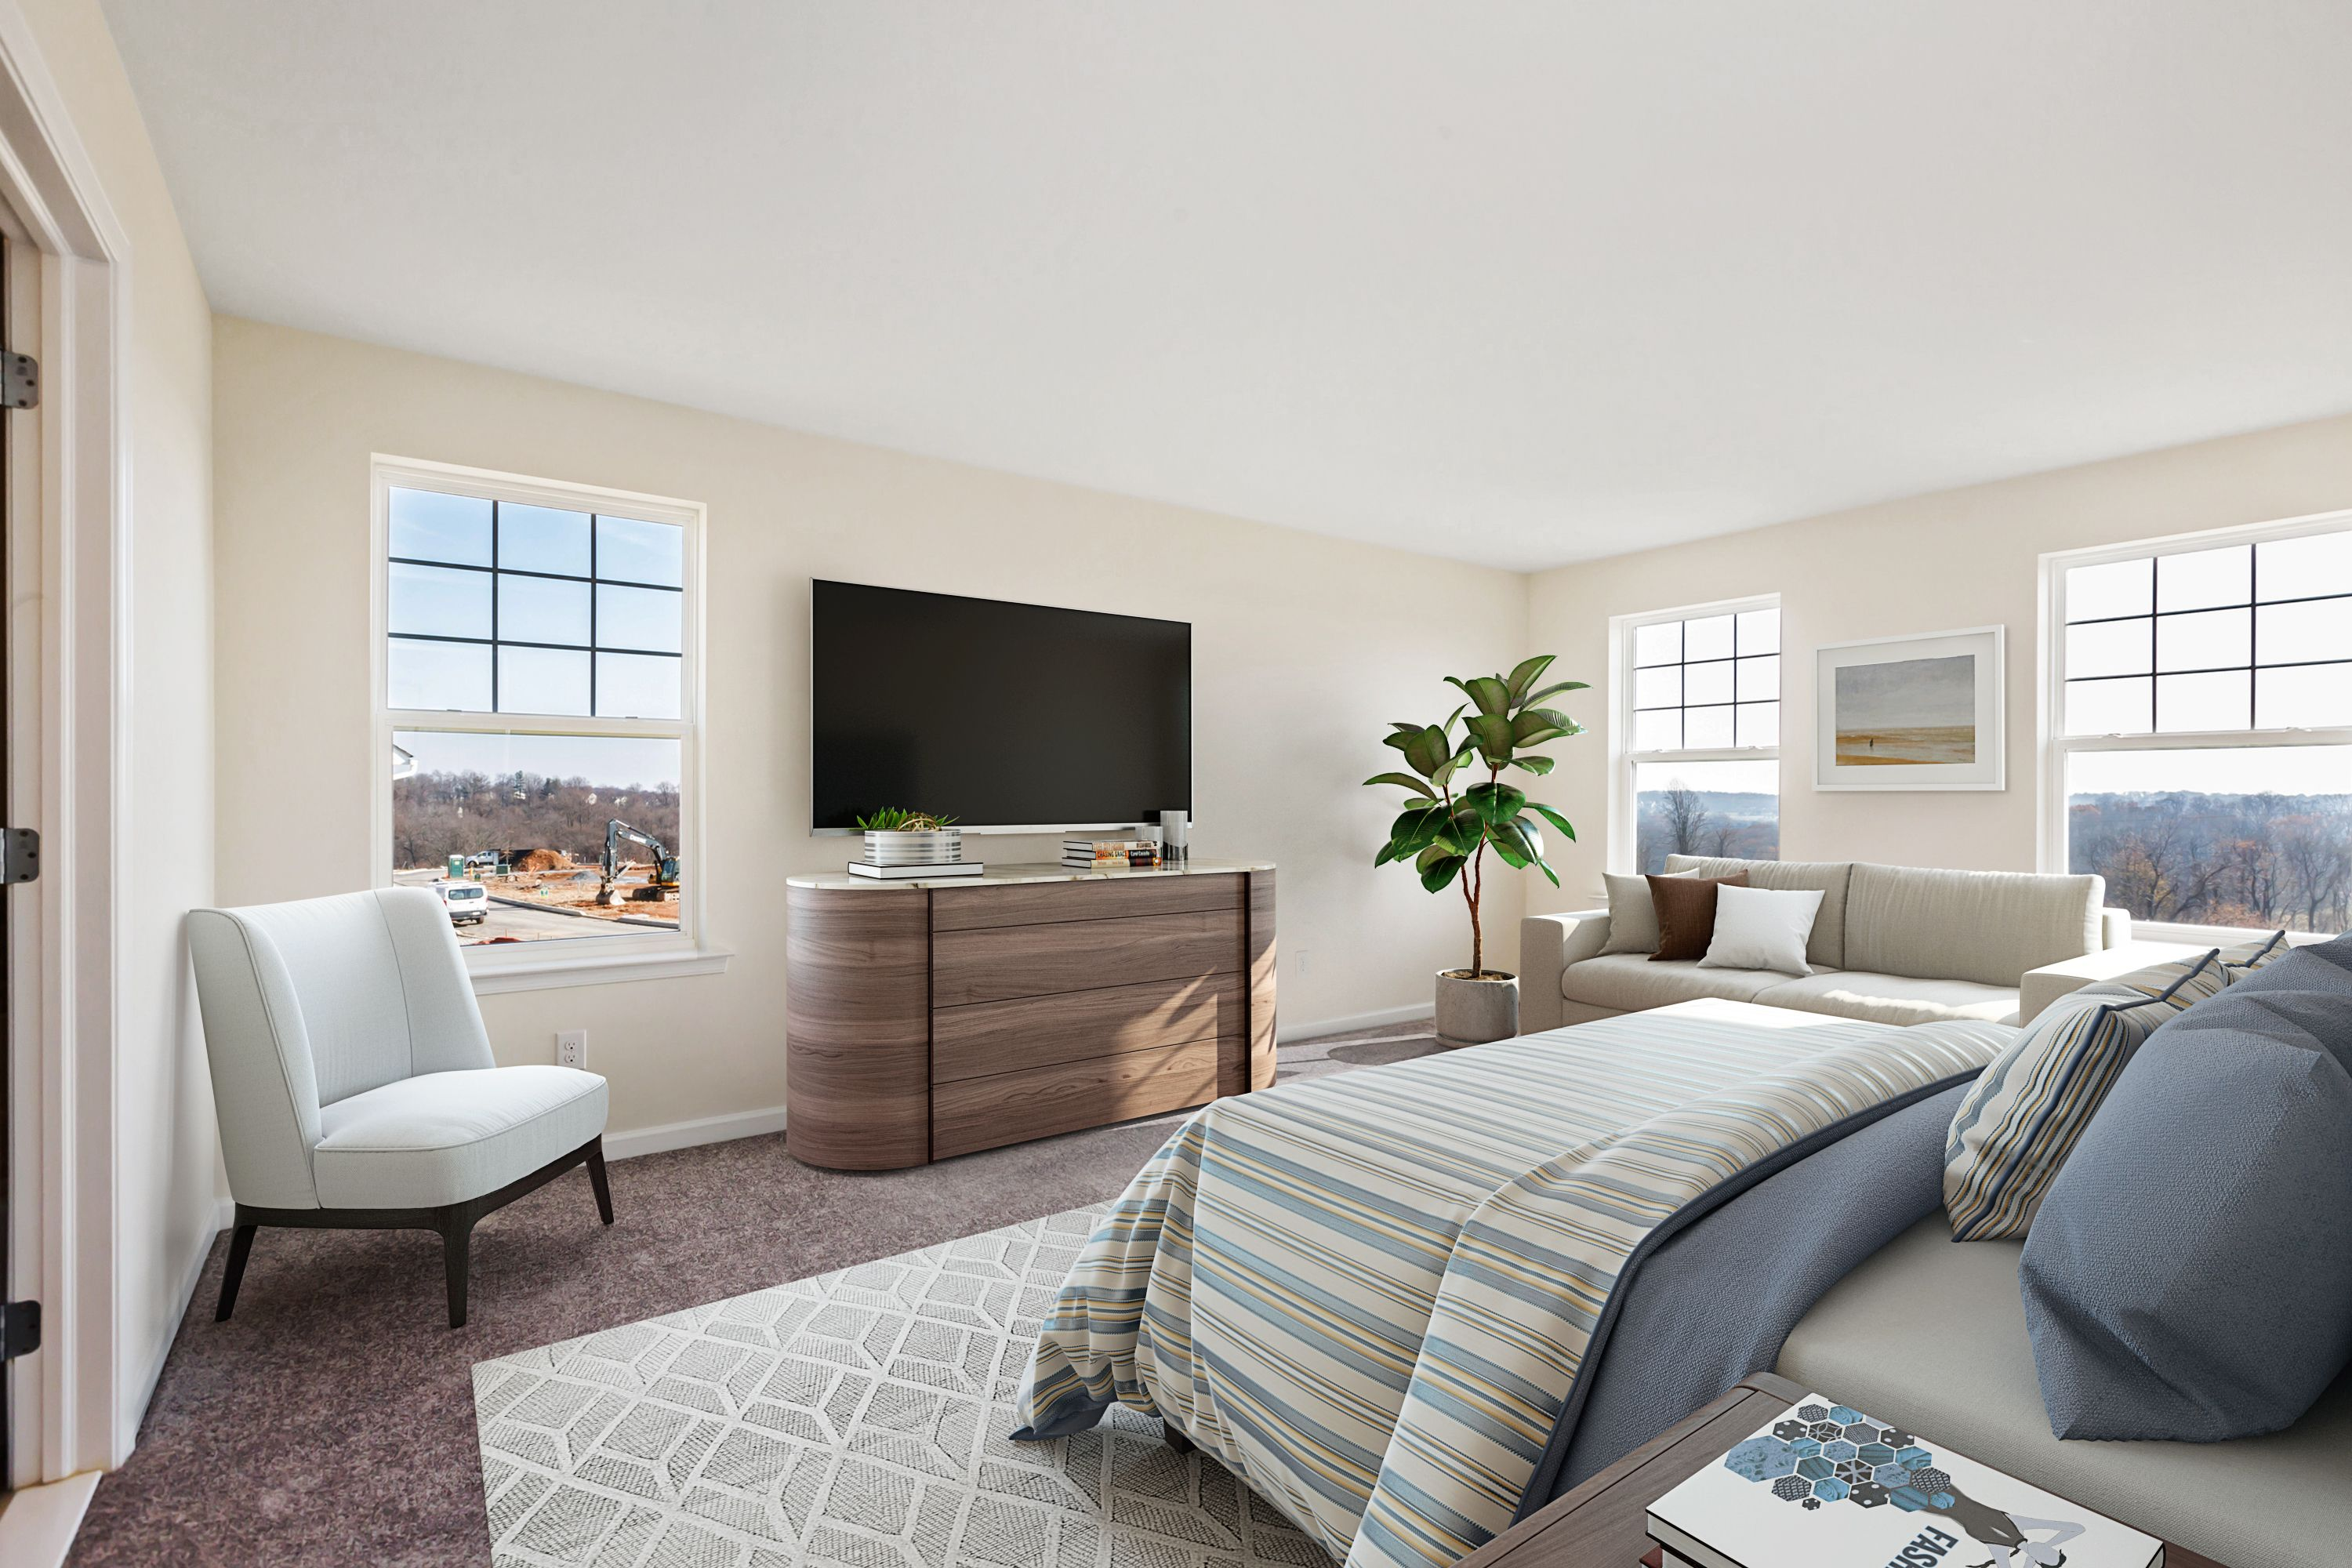 Bedroom featured in the Woodbine Select By Rouse Chamberlin Homes in Philadelphia, PA